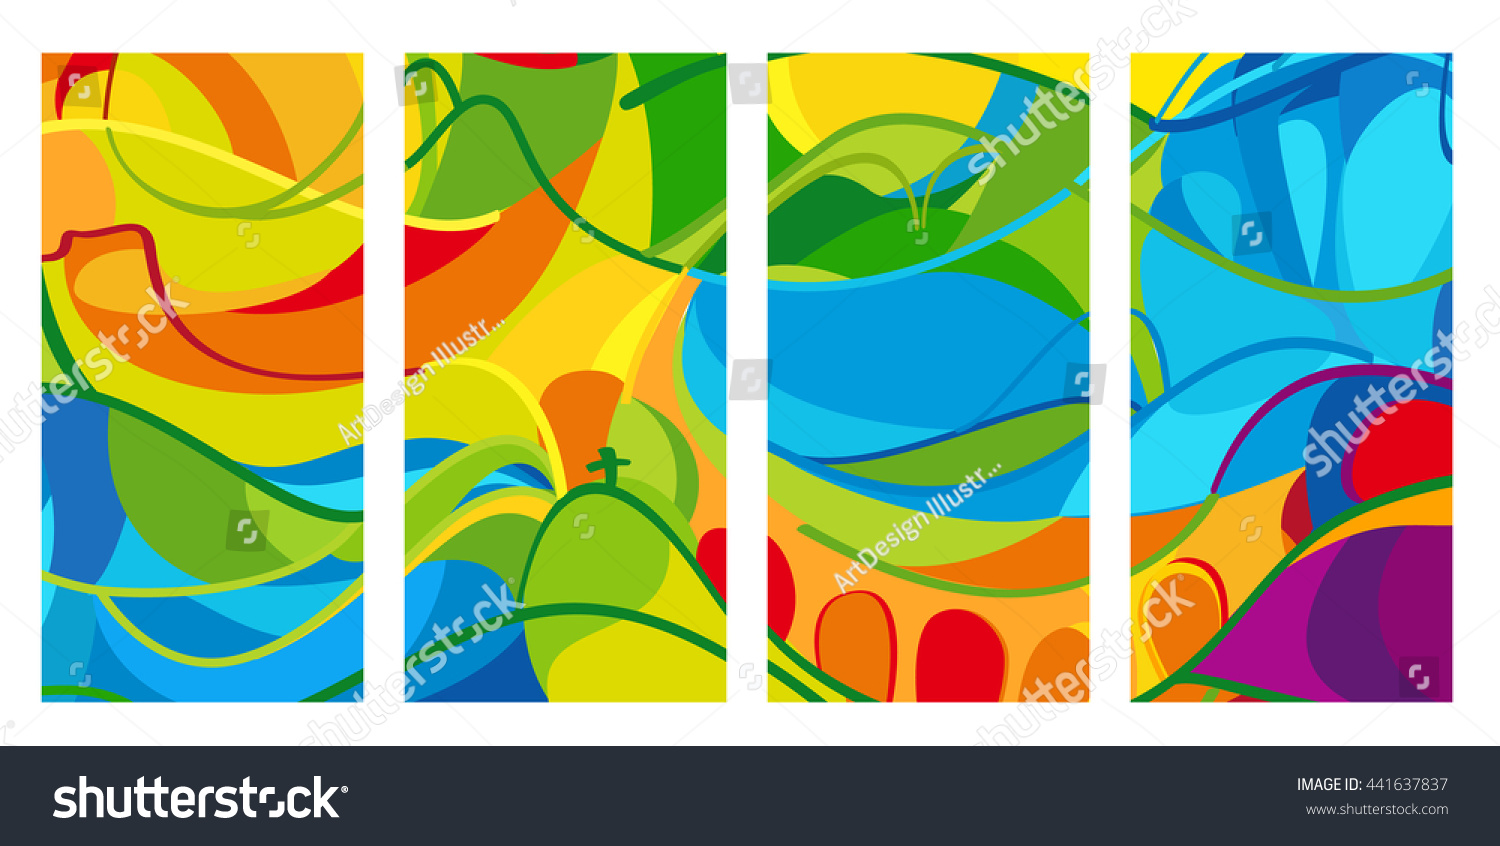 Pattern For Sport Wallpaper: Rio 2016 Set Colorful Abstract Backgrounds Stock Vector